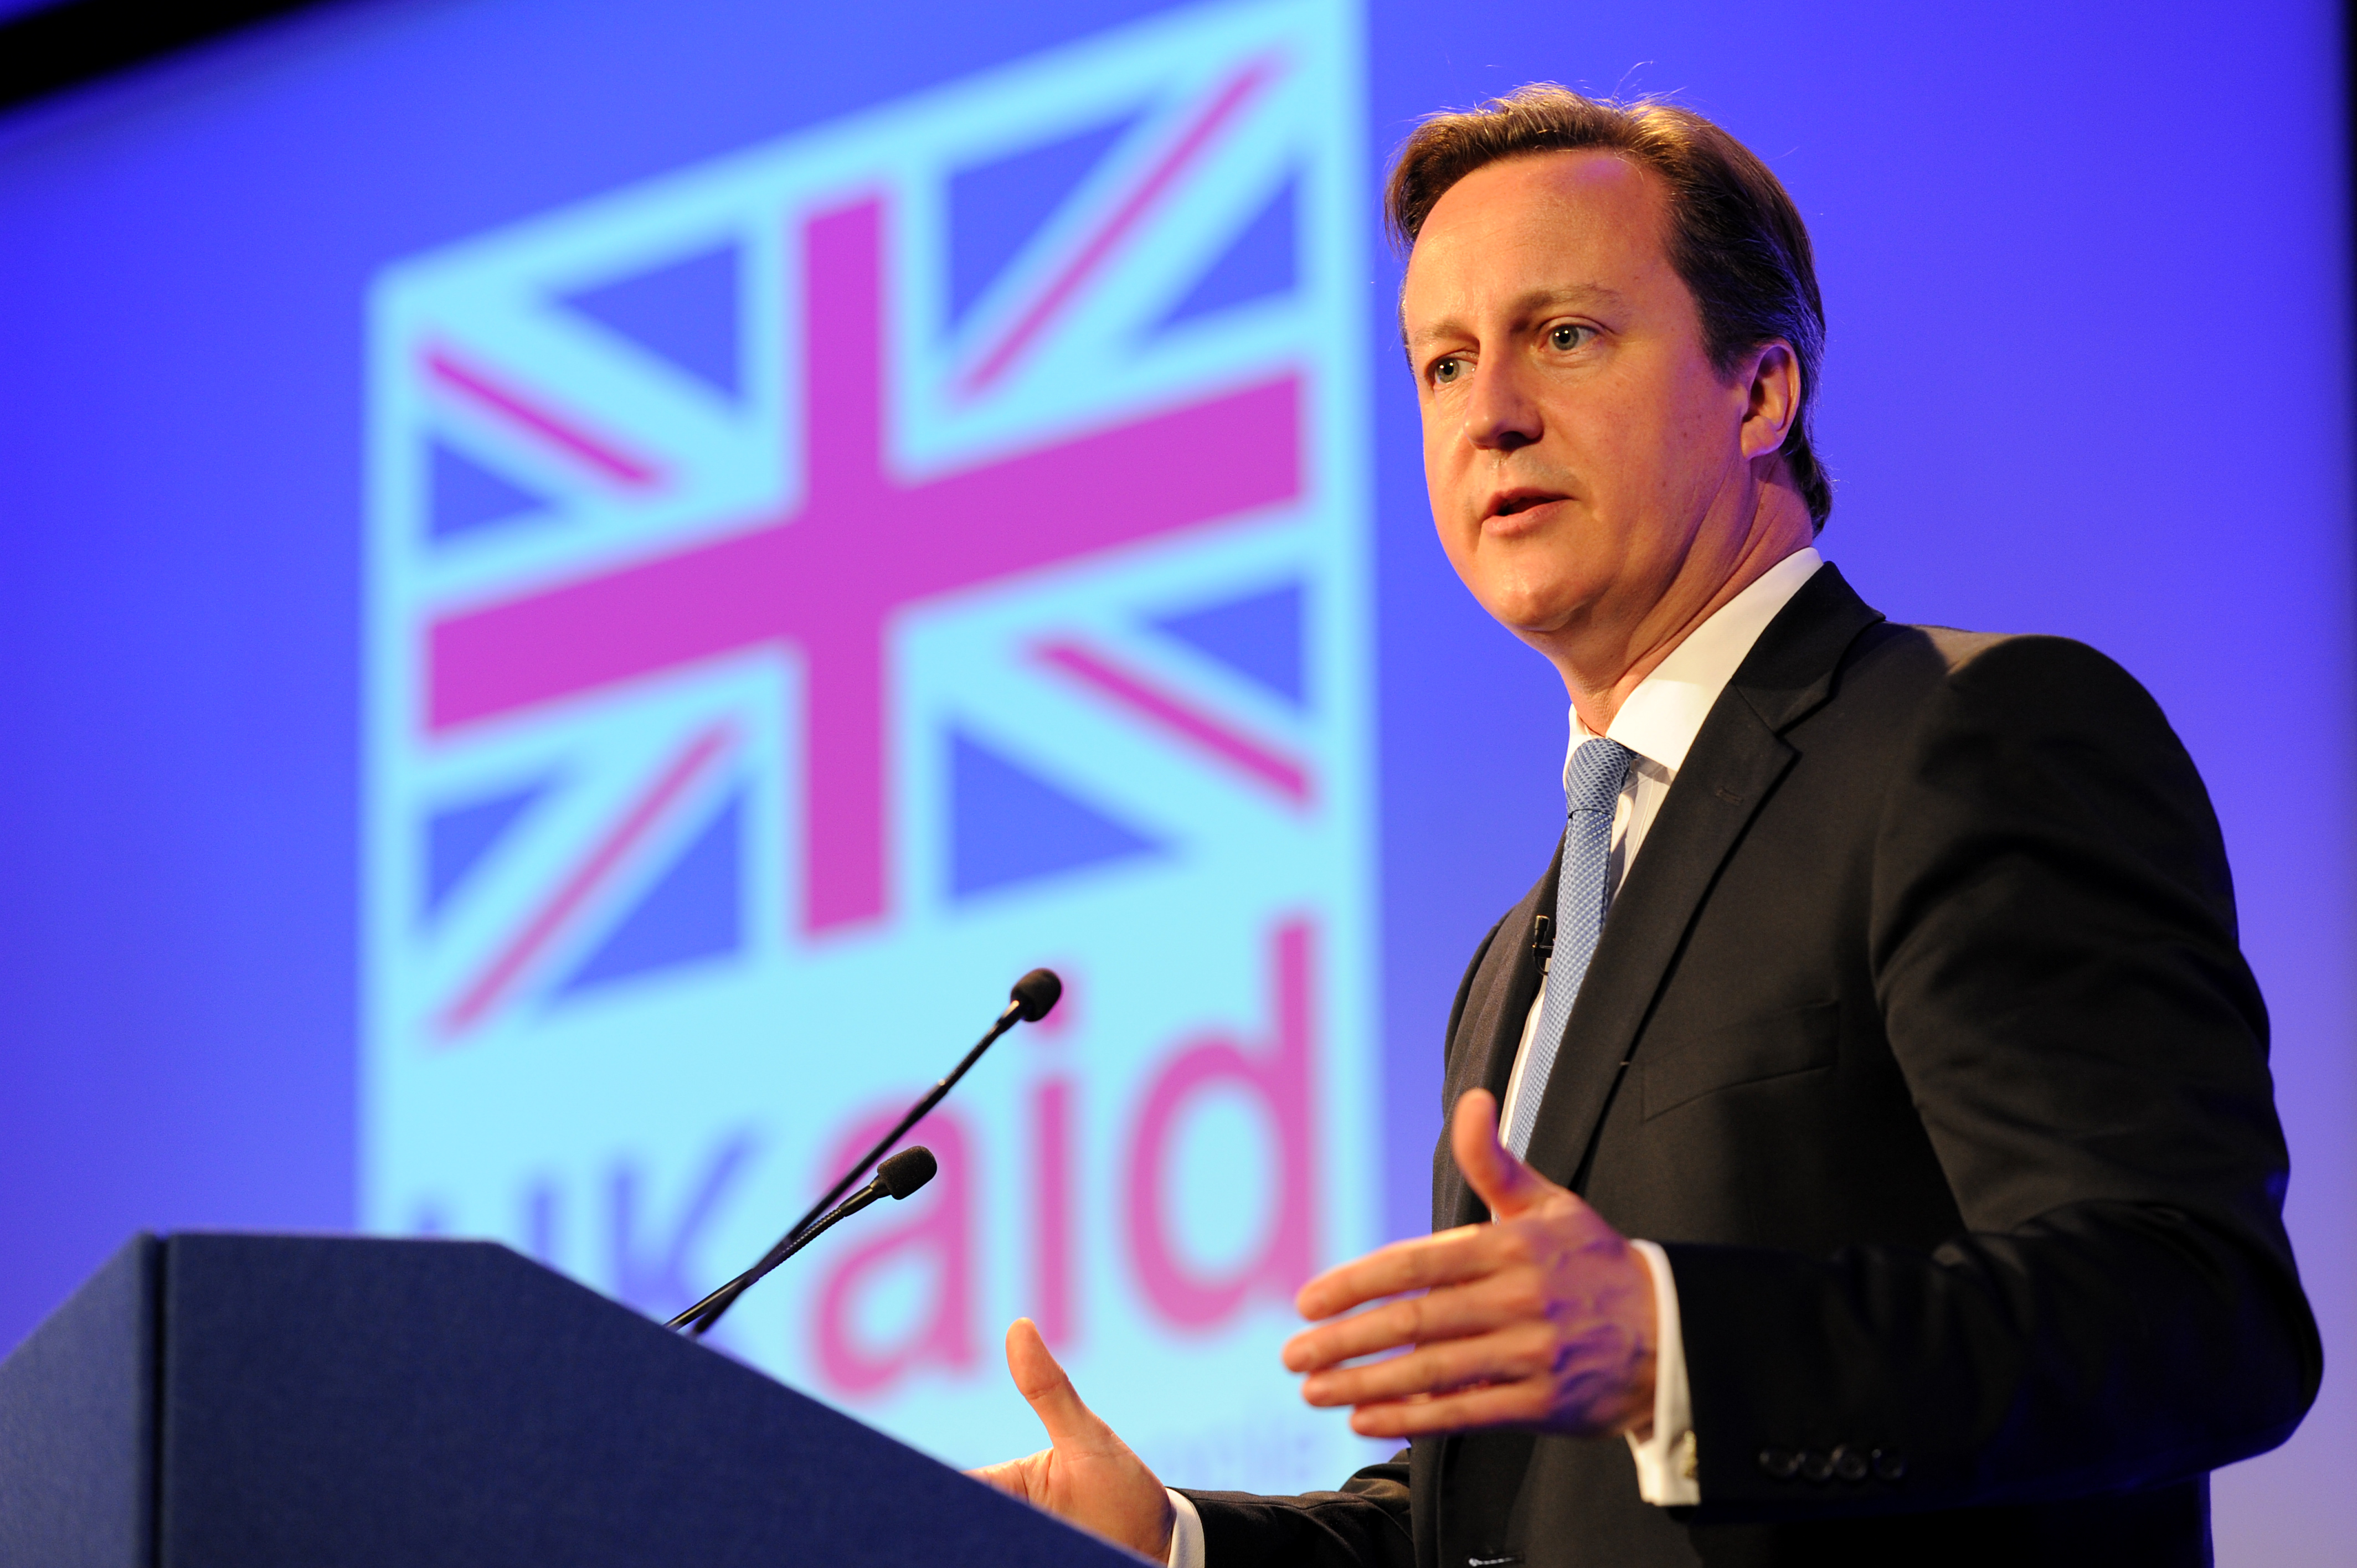 David Cameron at a podium in front of a UK Aid flag